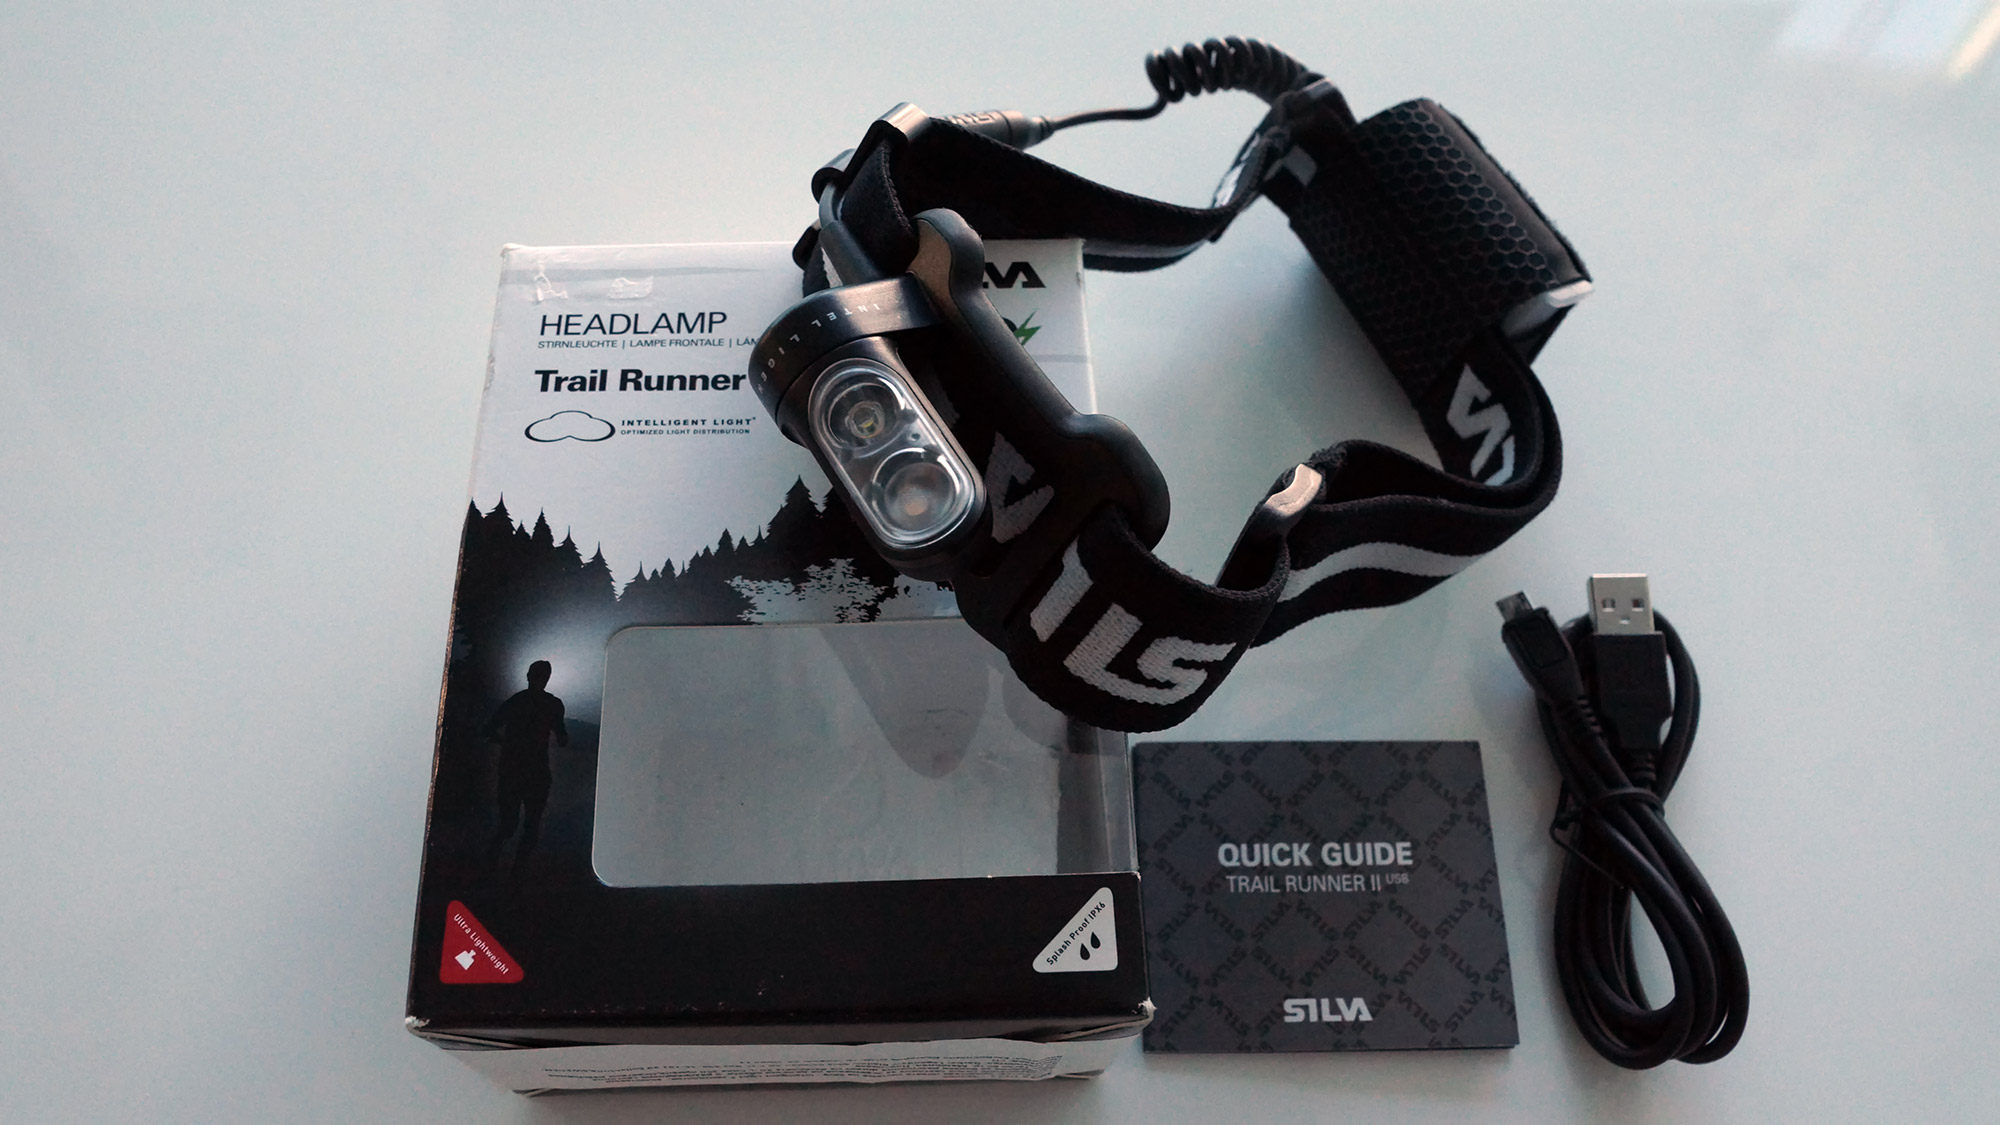 Silva Trail Runner II USB Box